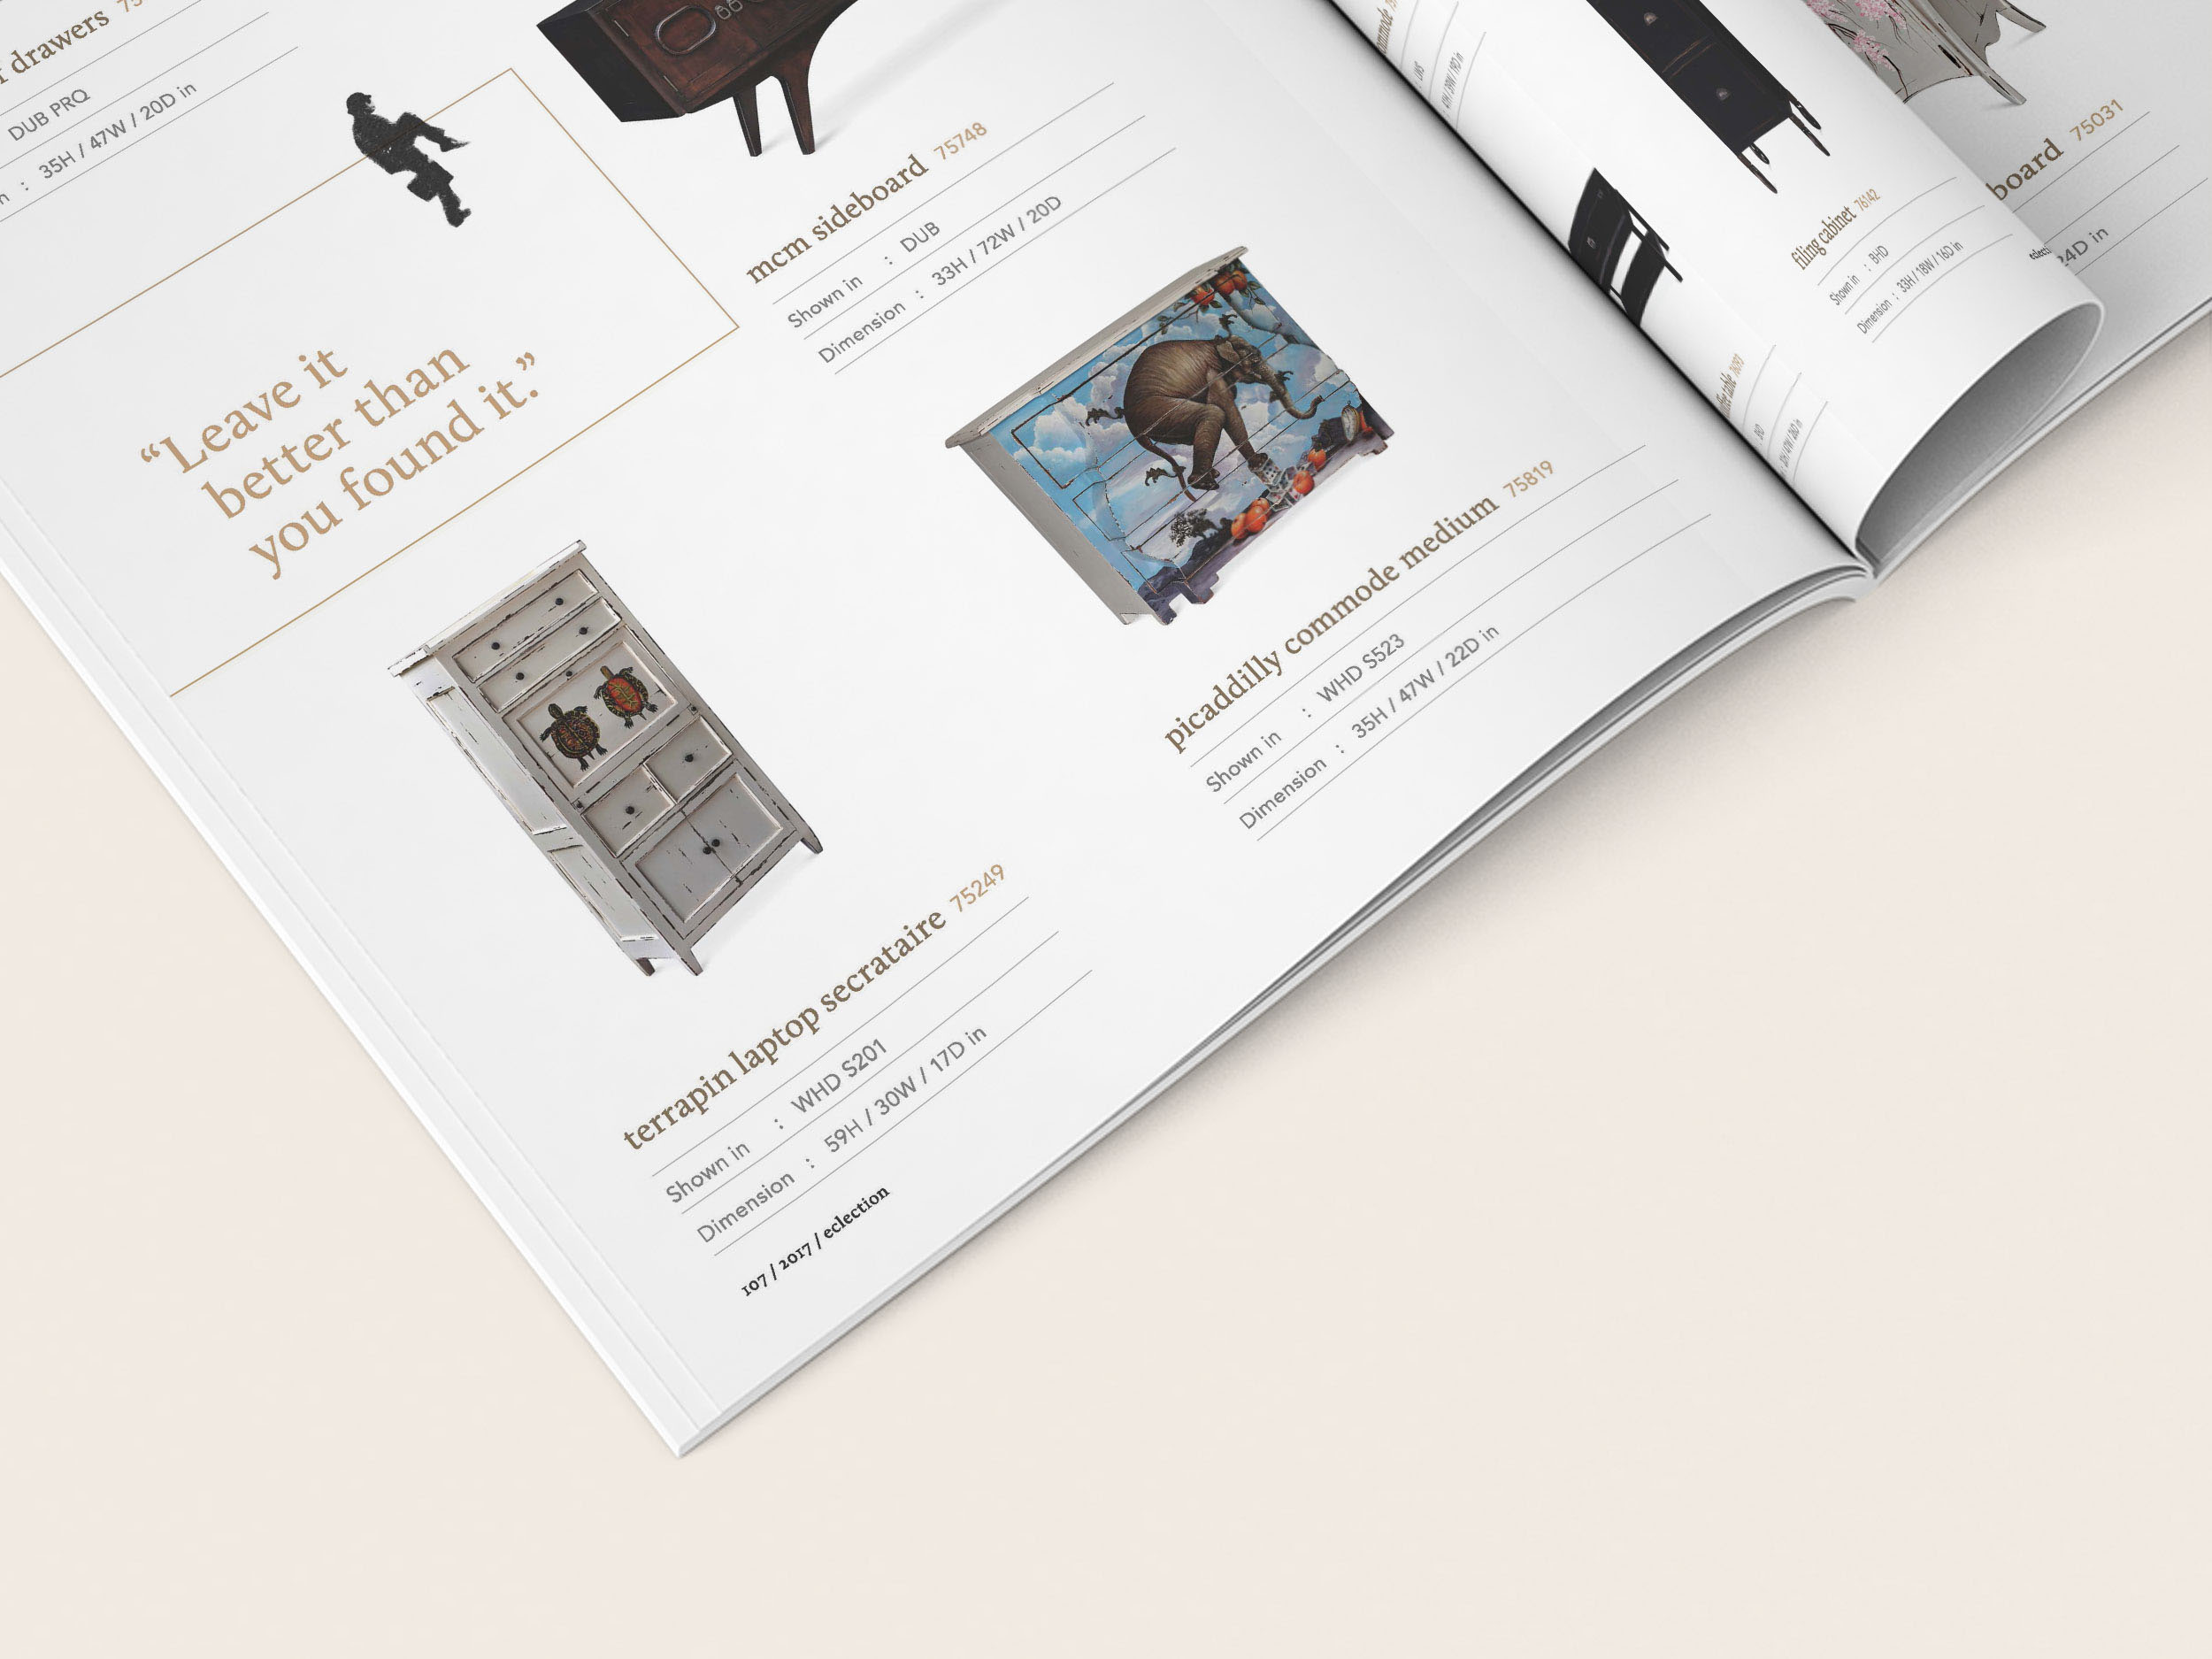 6 catalogue design insight - get personal